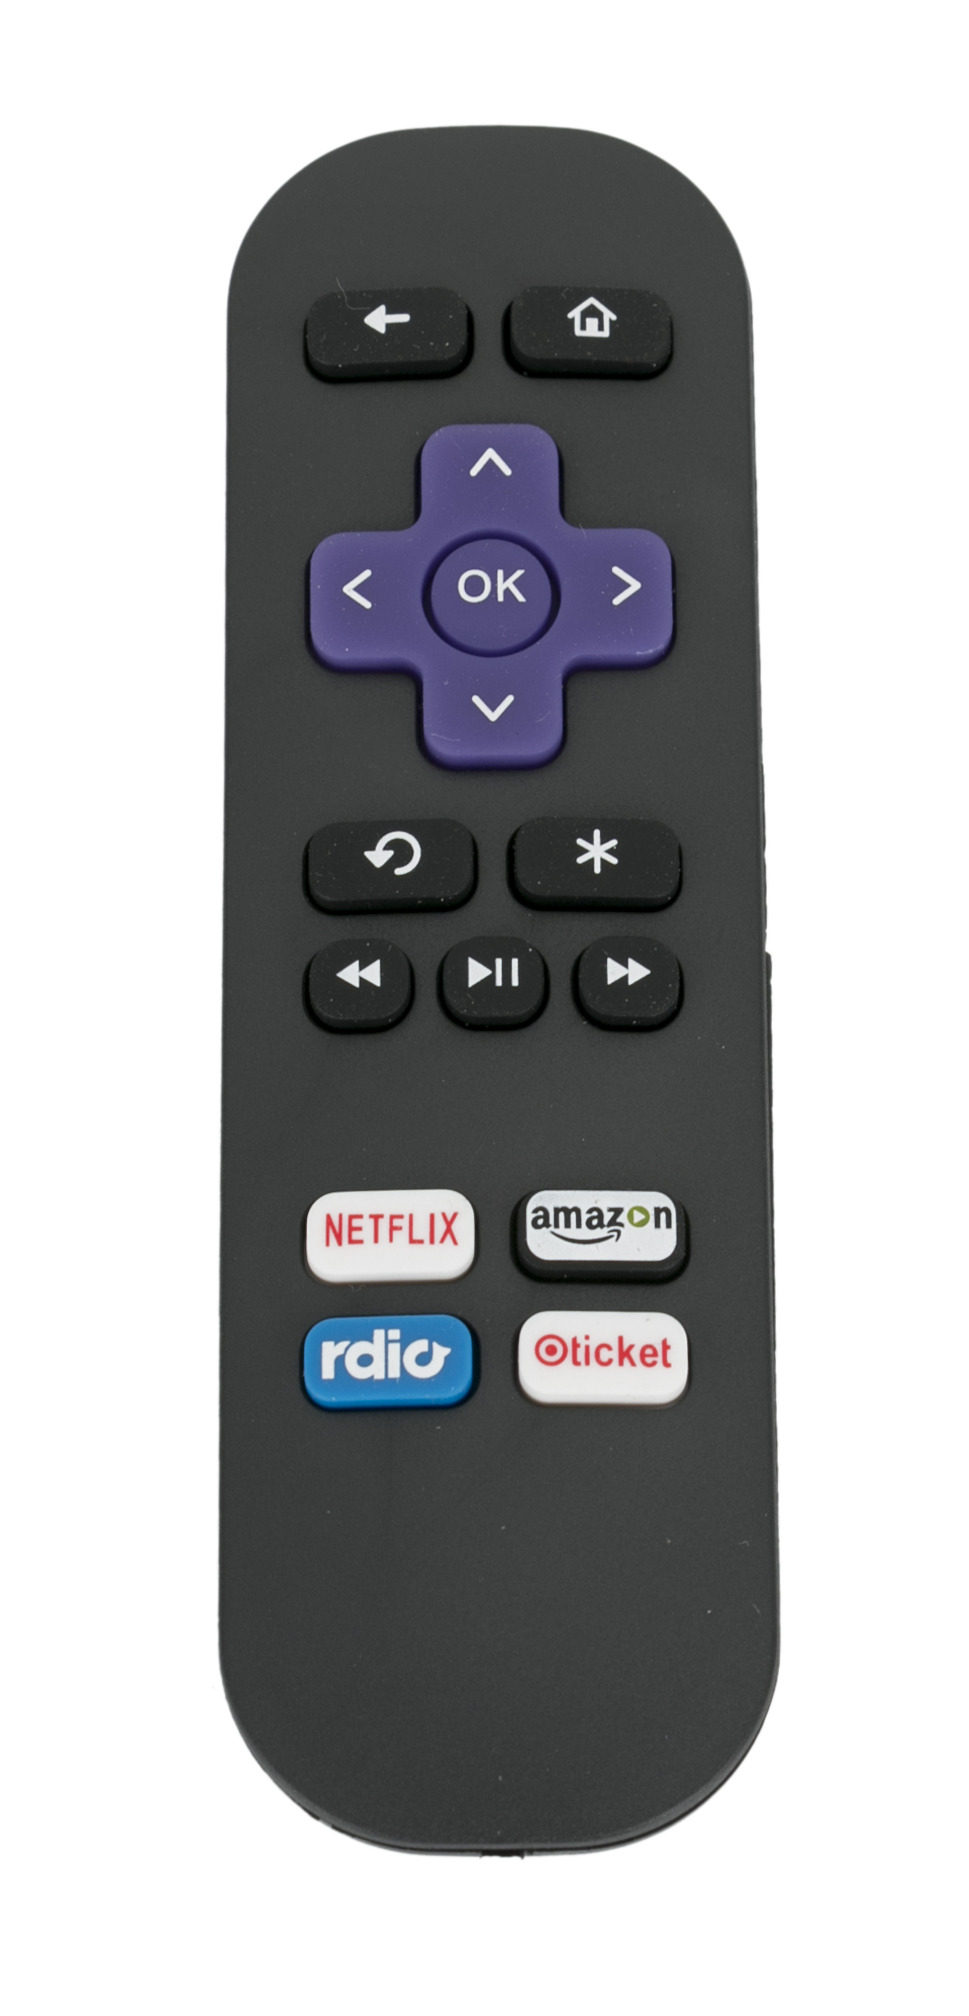 Roku Box: New Remote Control Compatible With Roku 1 Roku 2 Roku 3